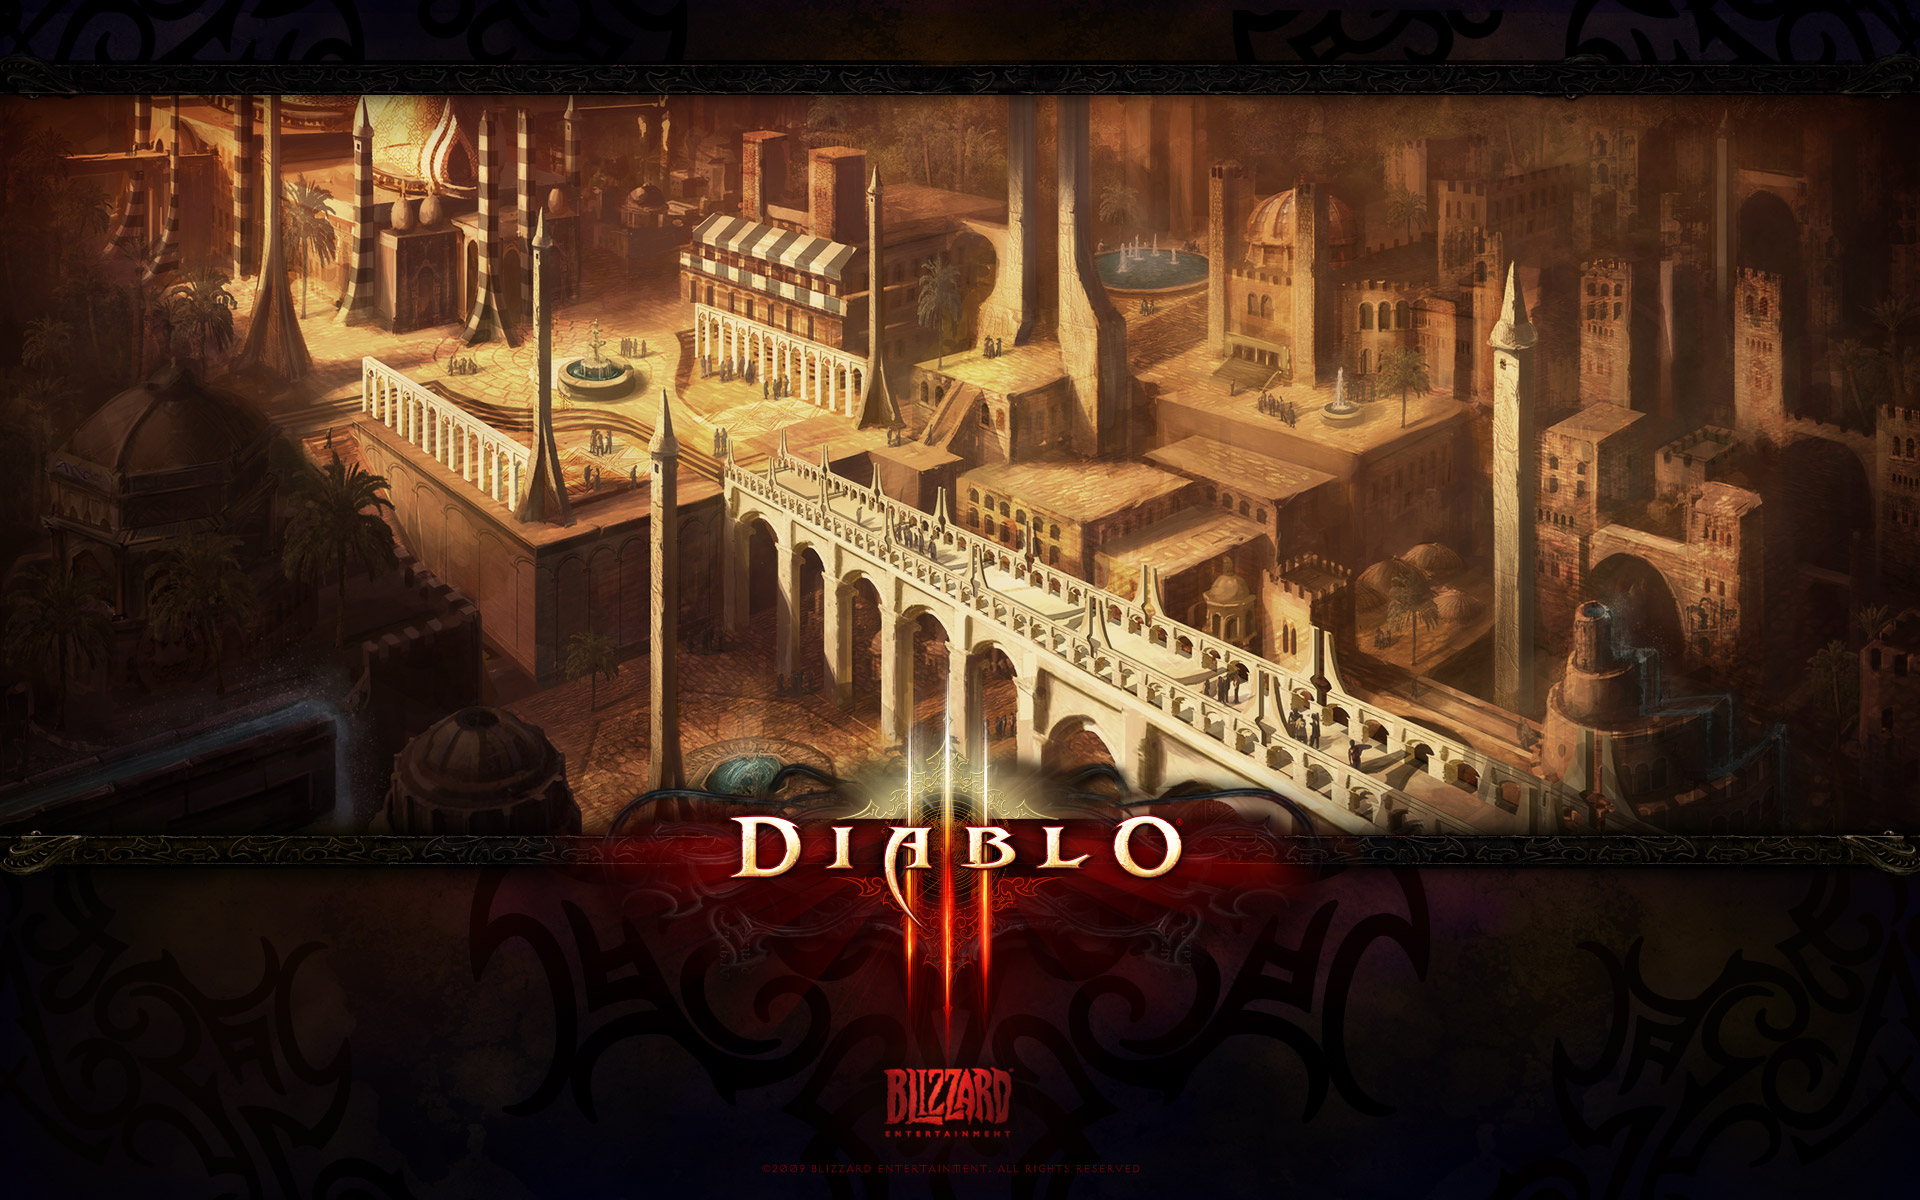 Wallpaper Jeux video Diablo 3 Caldeum